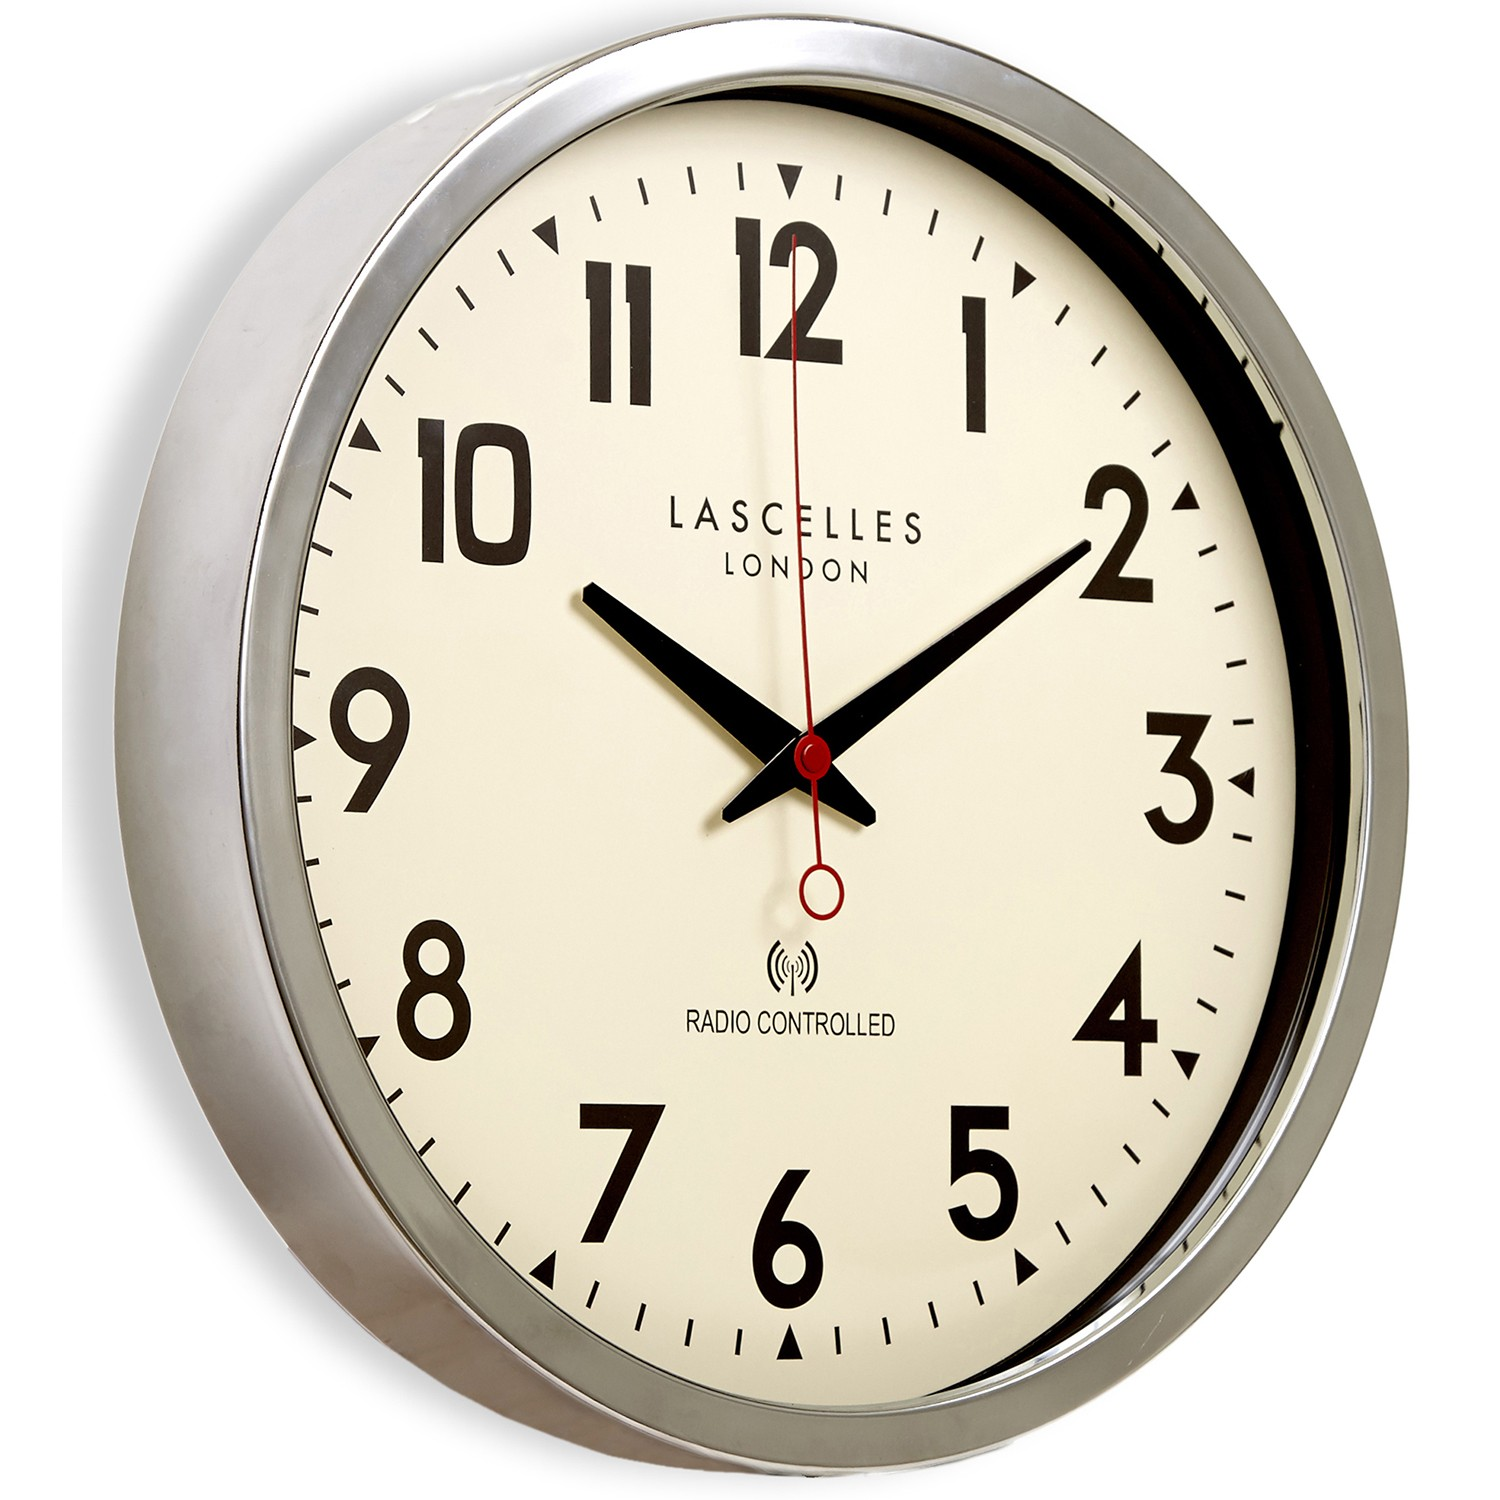 Brookpace Lascelles Radio Controlled Wall Clock Chrome Le